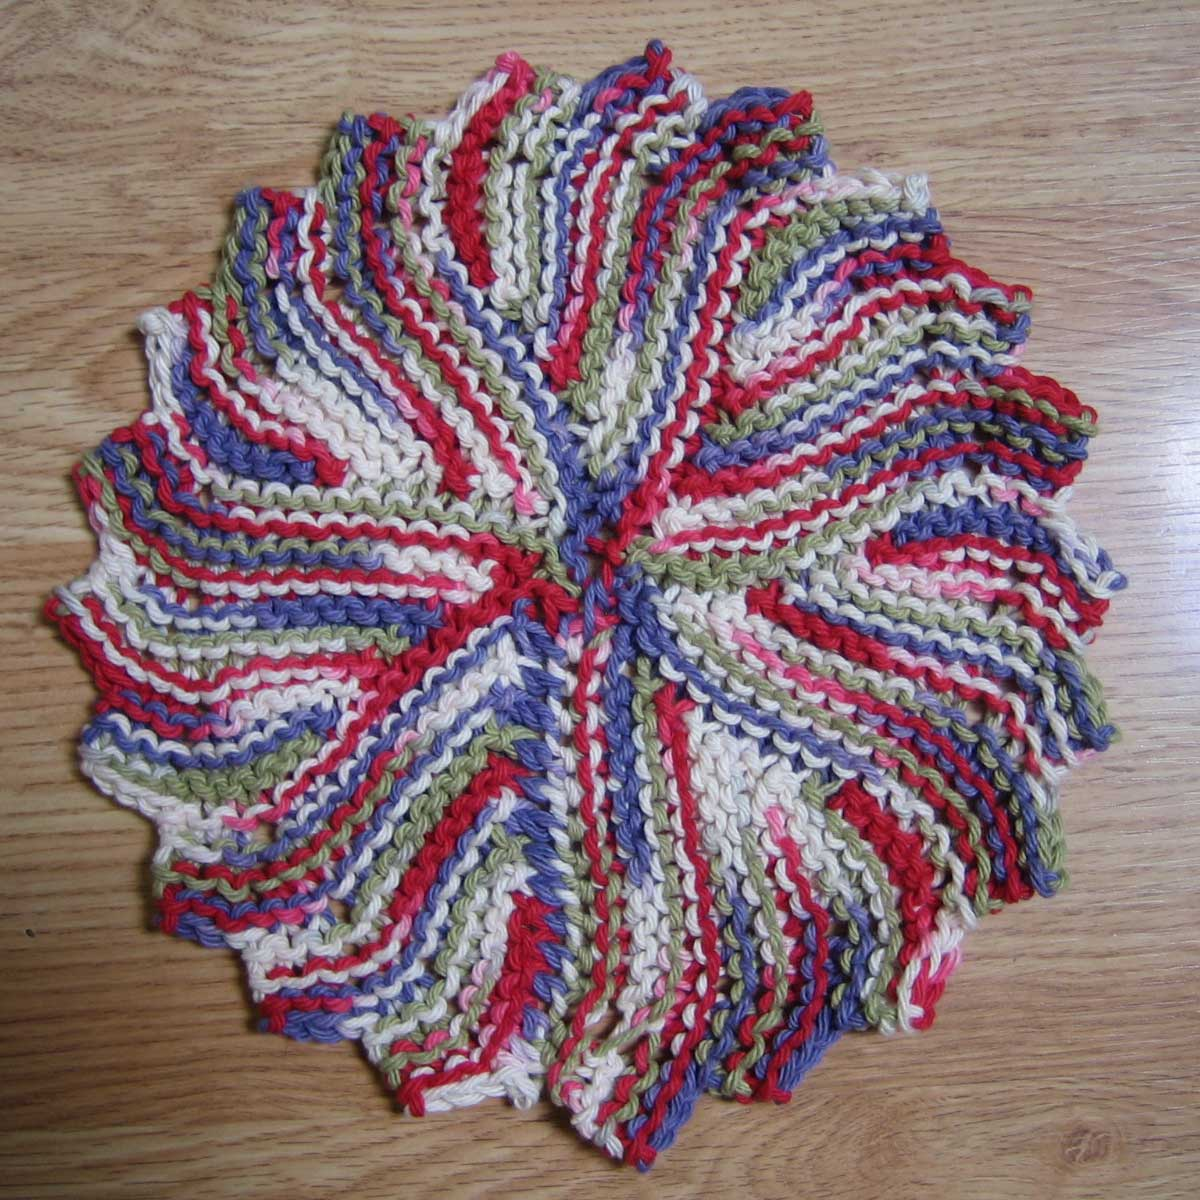 Knitting Circle Near Me : Janelwashere knit round dishcloth